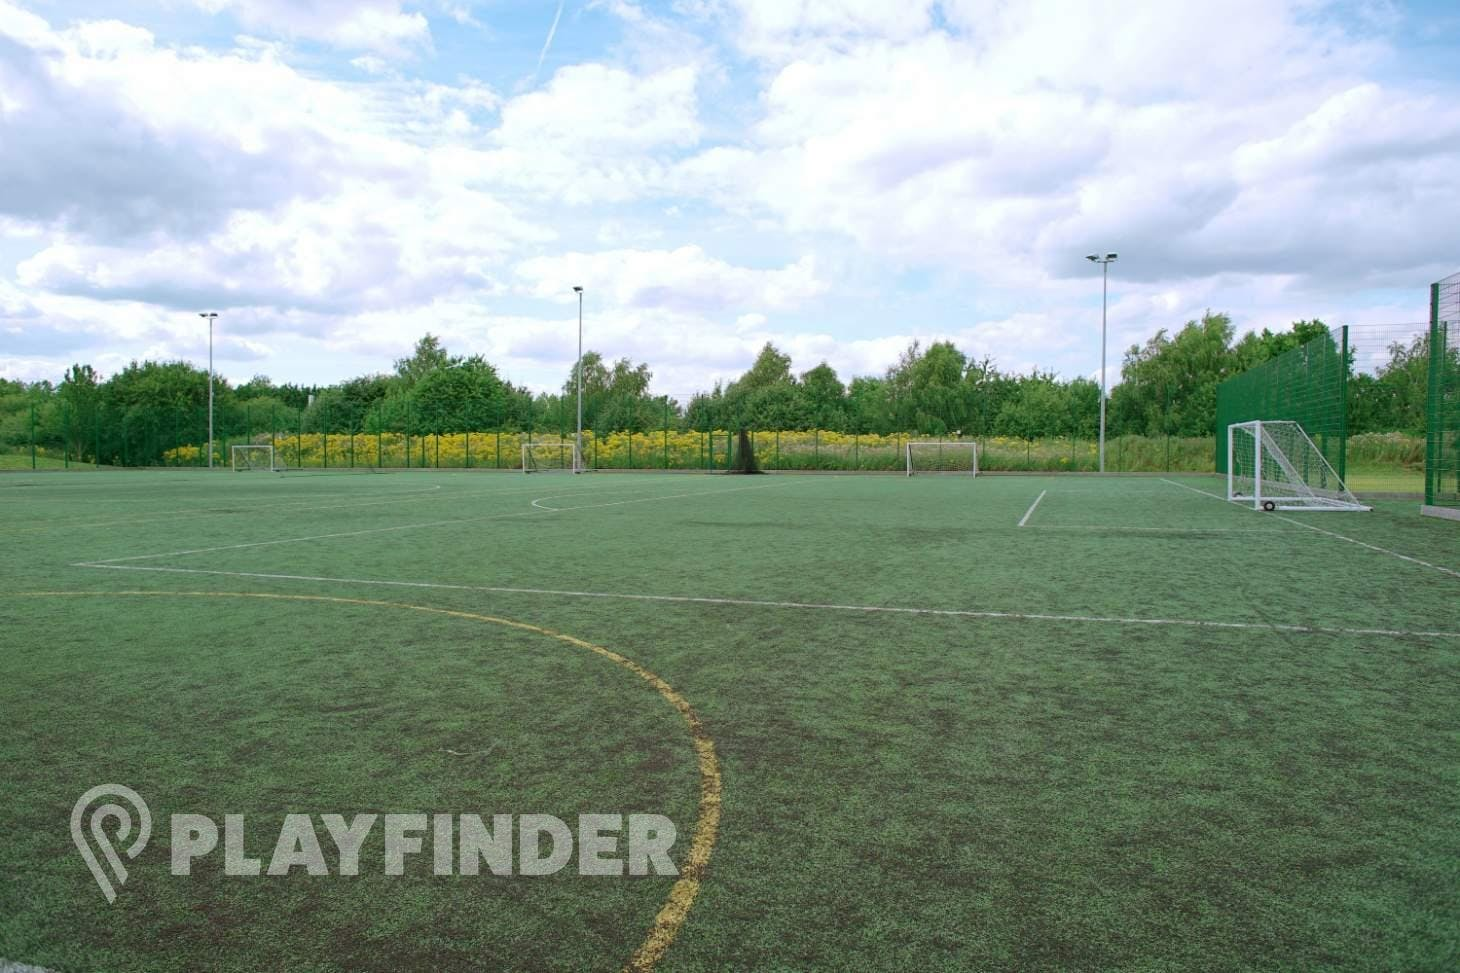 Cox Green Leisure Centre 5 a side | Astroturf football pitch